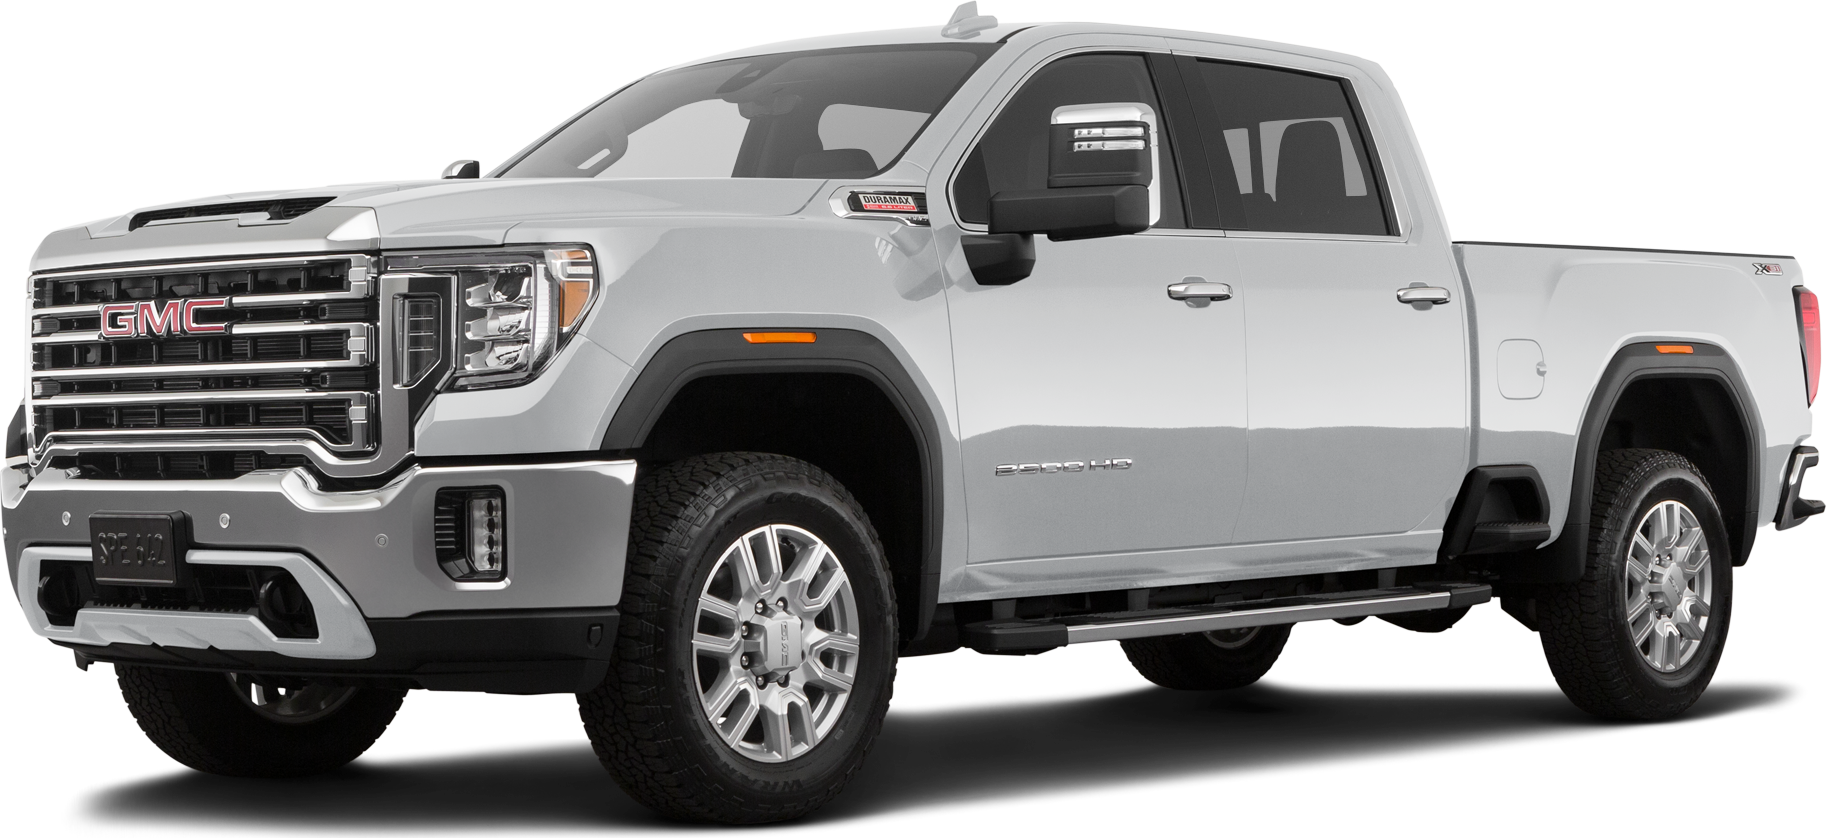 2020 gmc sierra 1500 prices reviews pictures kelley blue book 2020 gmc sierra 1500 prices reviews